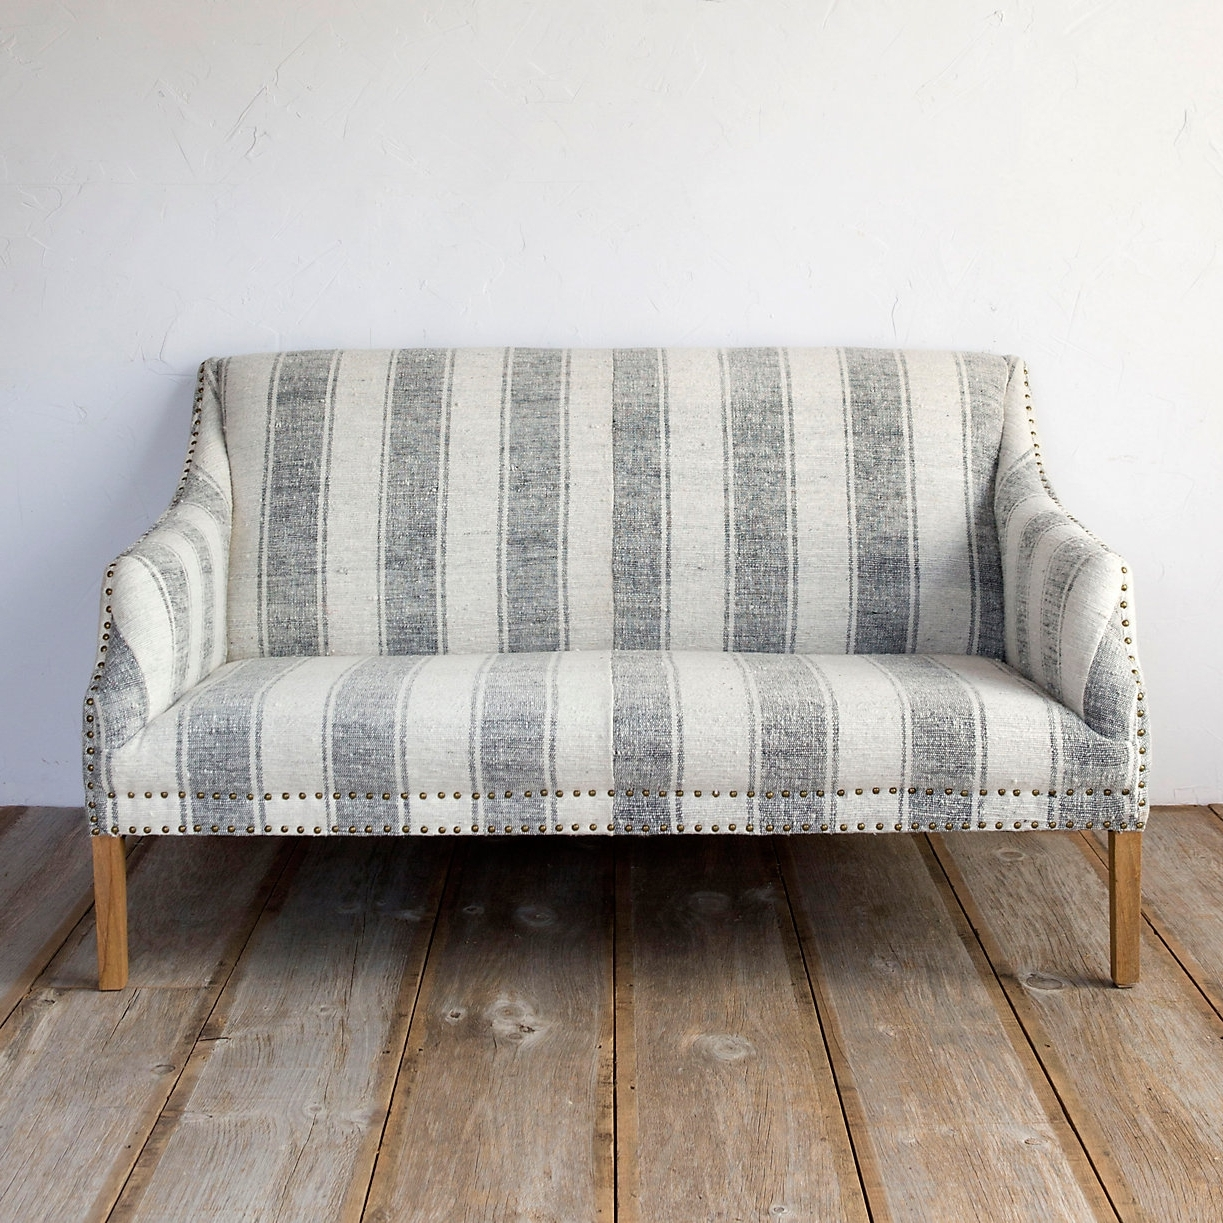 Shabby Chic Sofas Within Well Known Shabby Chic Decor For Sale Shabby Chic Used Furniture Shabby Chic (View 16 of 20)